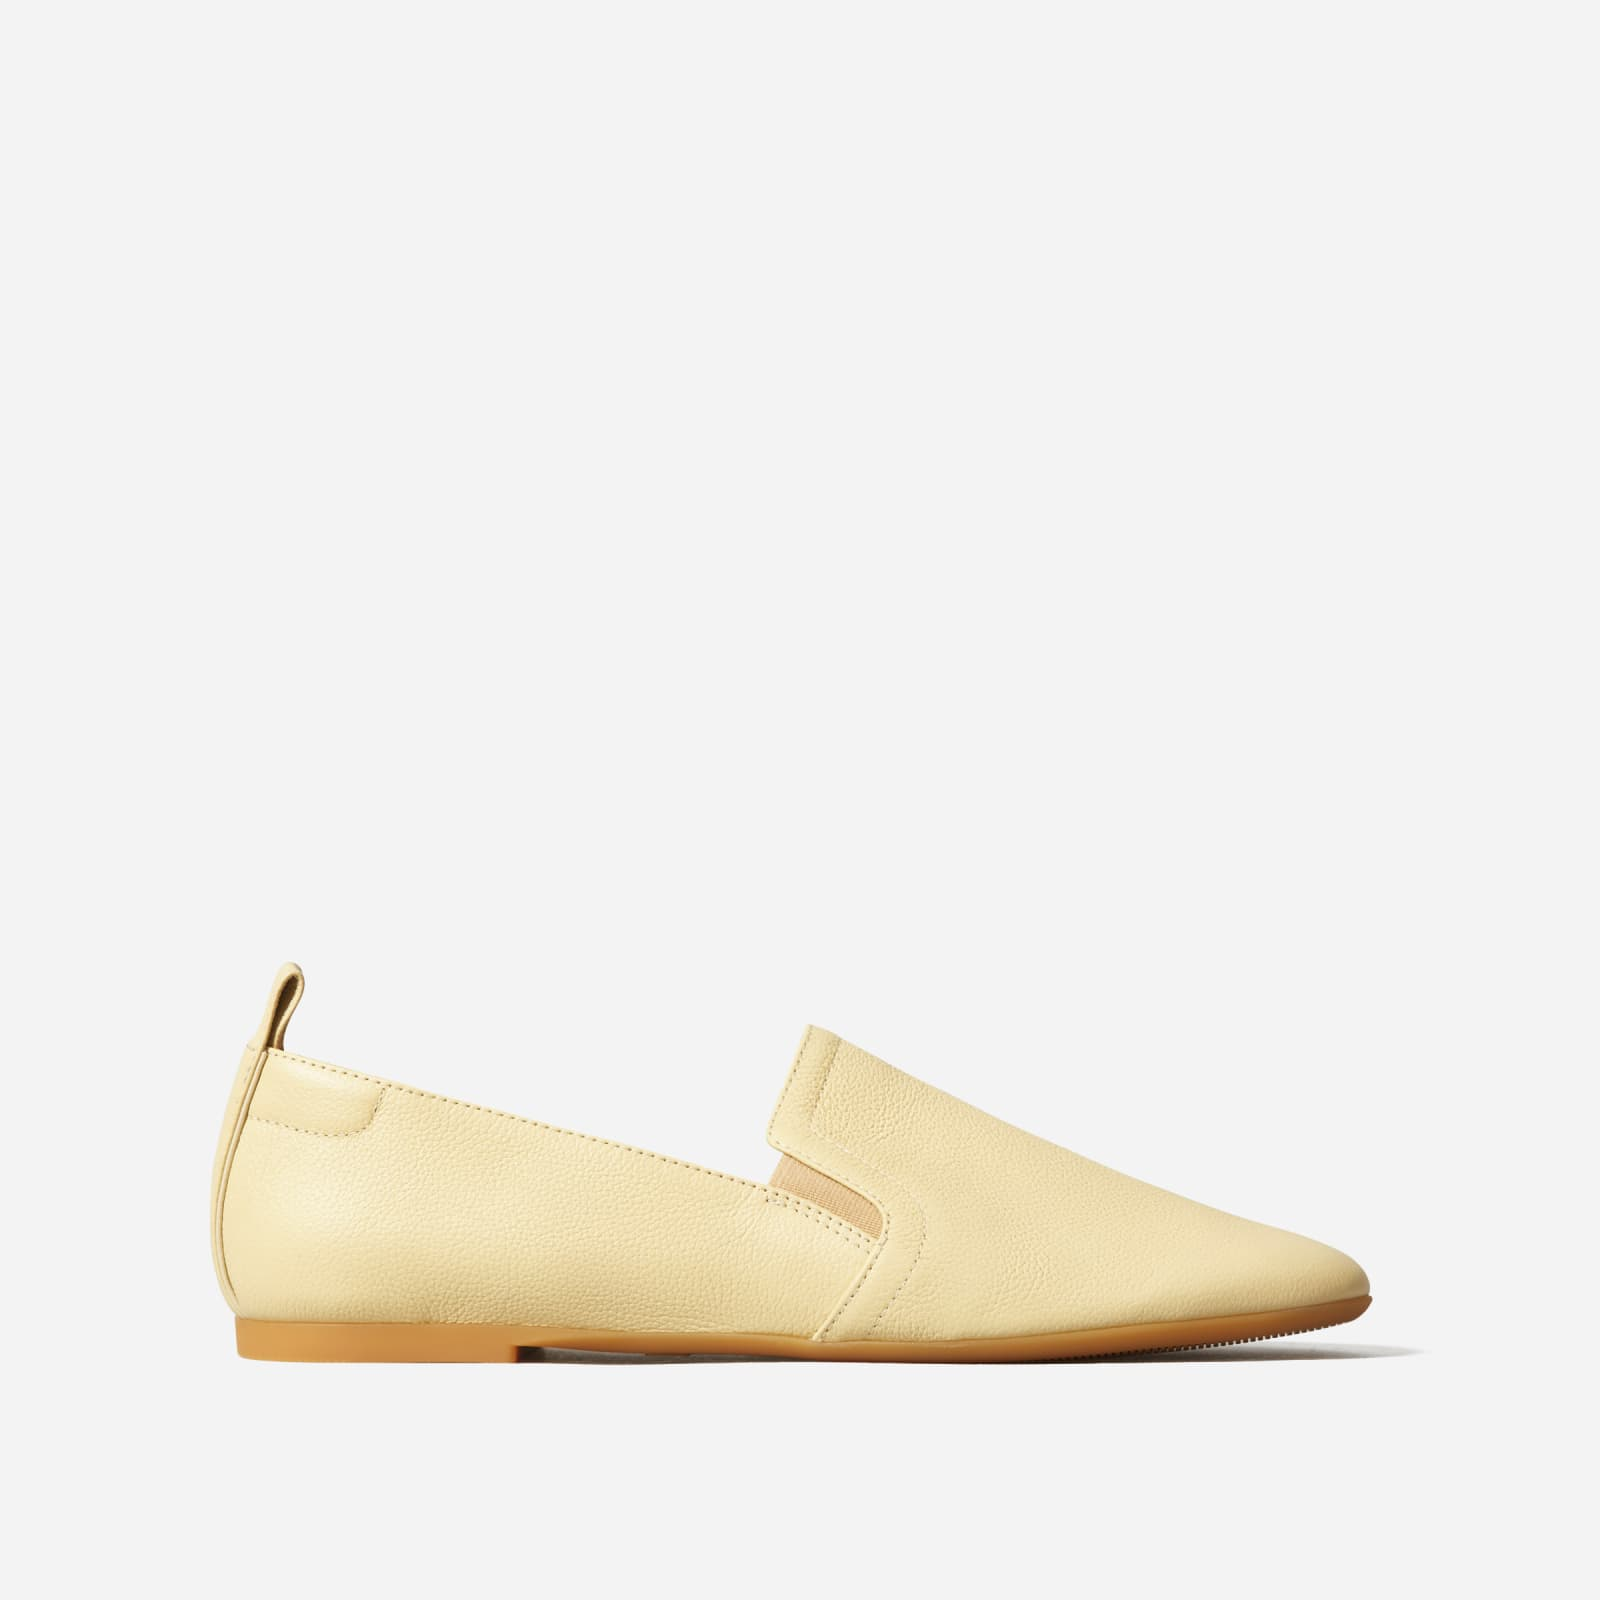 leather slip-on by everlane in lemon, size 5